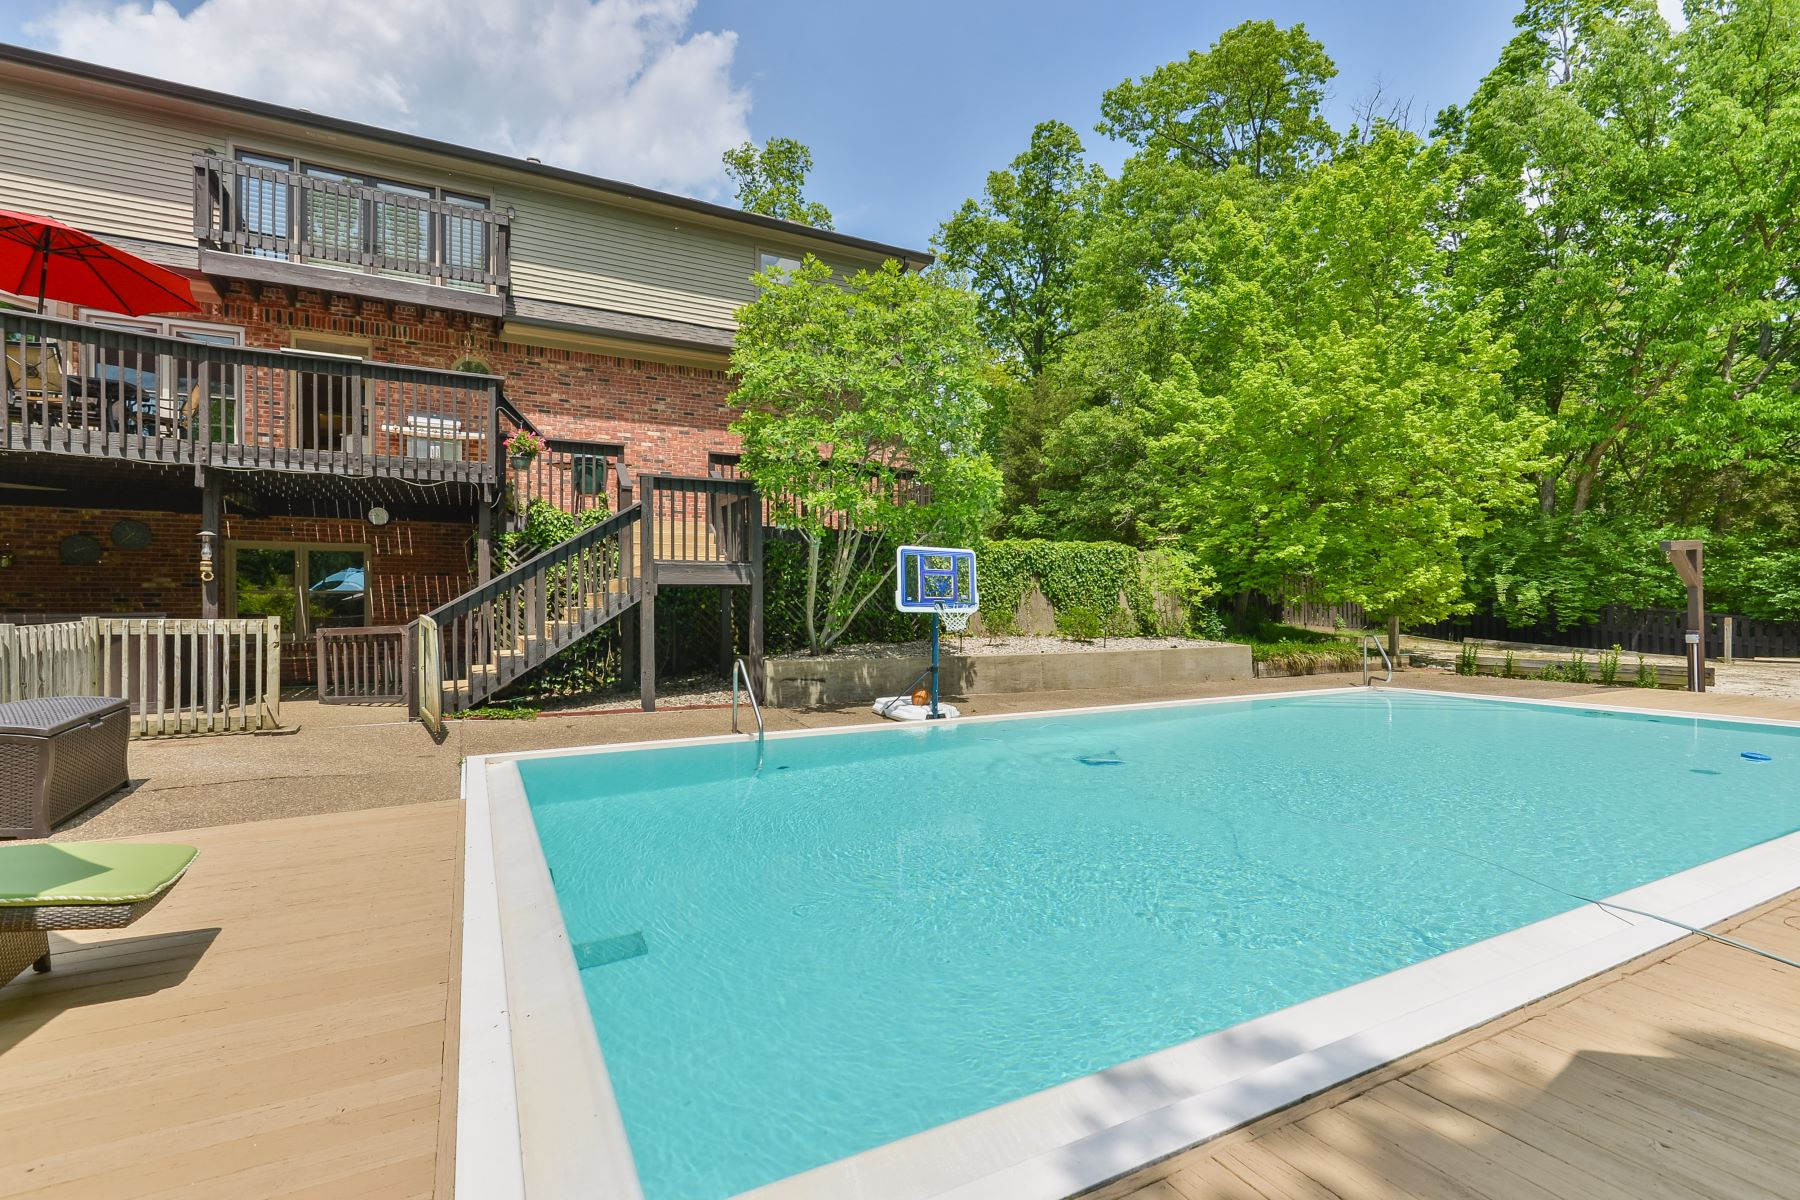 Additional photo for property listing at 7719 Cambridge Court  Crestwood, Kentucky 40014 United States